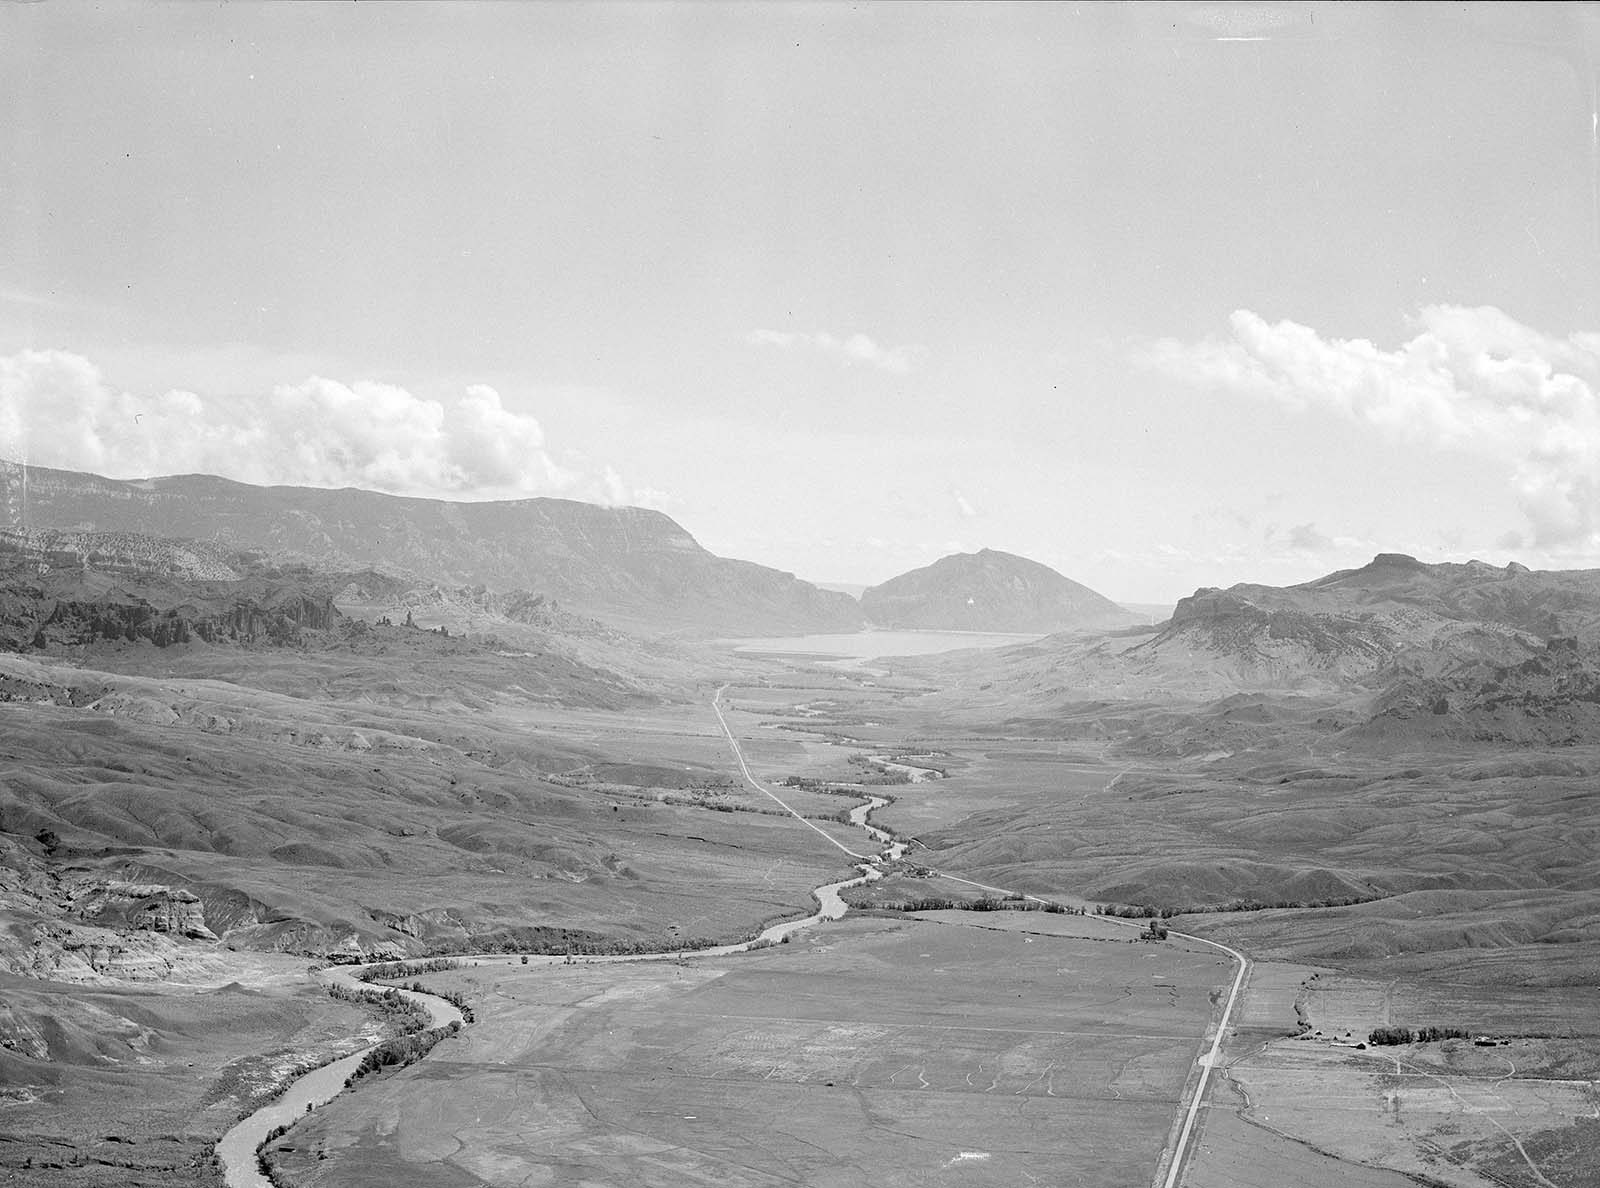 Aerial Aerial view of Wapiti Valley below with Rattlesnake Mountain on far left, Spirit (Cedar) Mountain center, and Sheep Mountain on right background. MS 89 Jack Richard Photograph Collection, McCracken Research Library. PN.89.29.4682.8of Wapiti Valley below with Rattlesnake Mountain on far left, Spirit (Cedar) Mountain center, and Sheep Mountain on right background. Hollister Ranch on bottom right with North Fork of Shoshone River flowing into Buffalo Bill Reservoir in background.